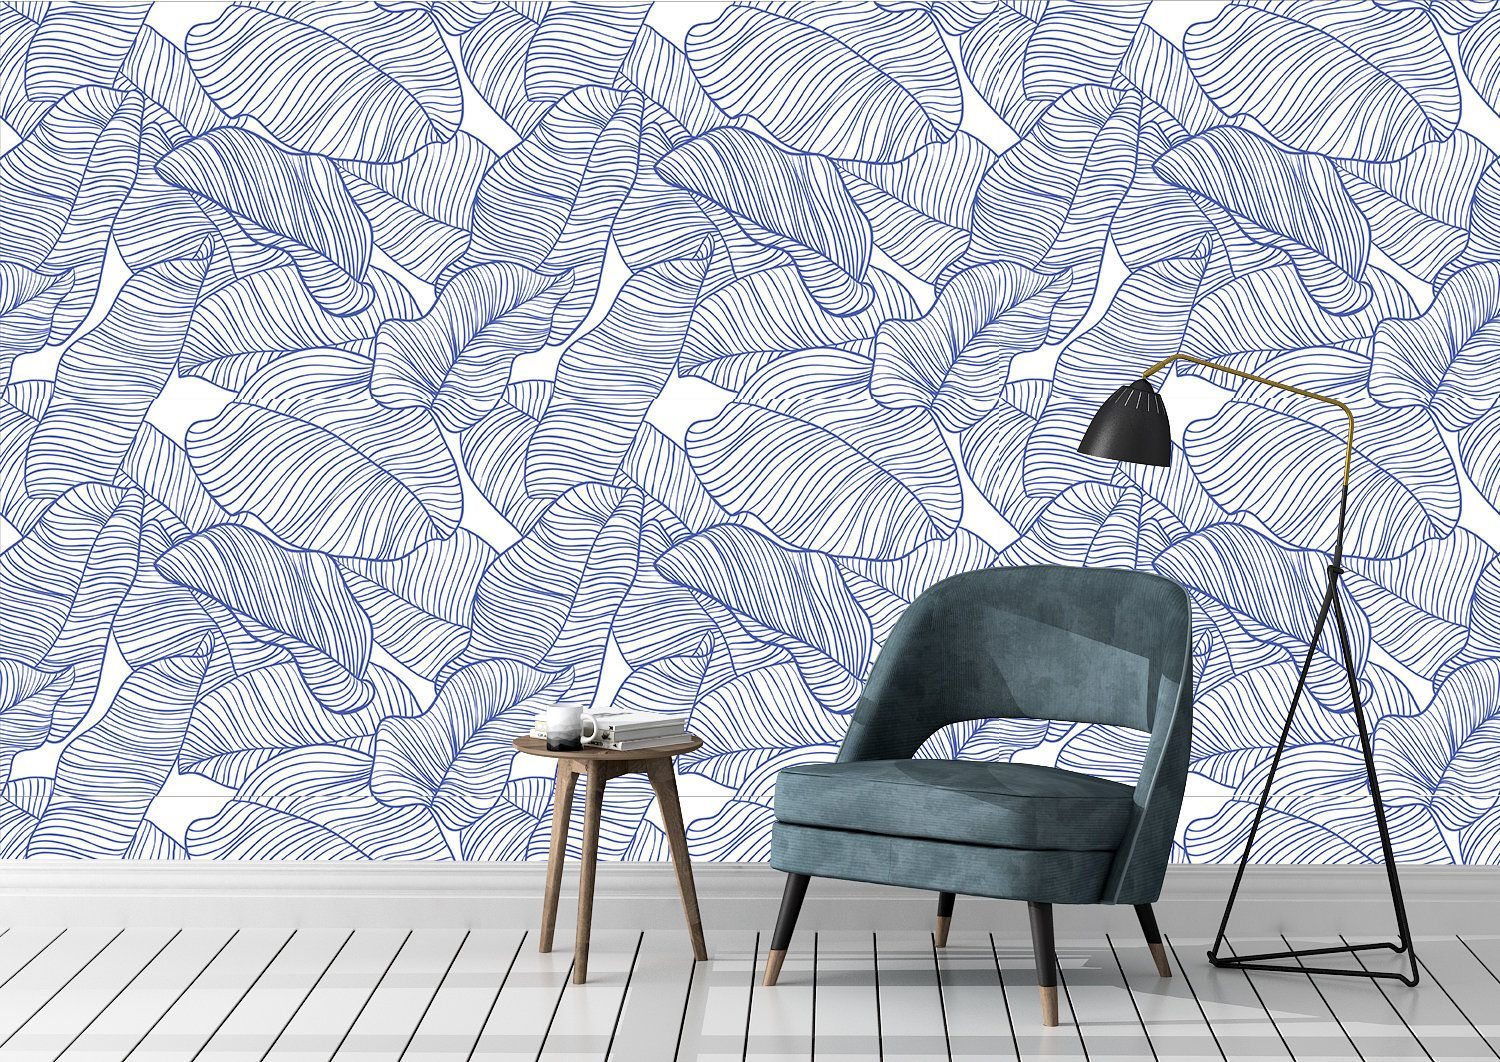 Removable Peel And Stick Wallpaper Blue Palm Leaves Outline Etsy Peel And Stick Wallpaper Retro Wallpaper Removable Wallpaper